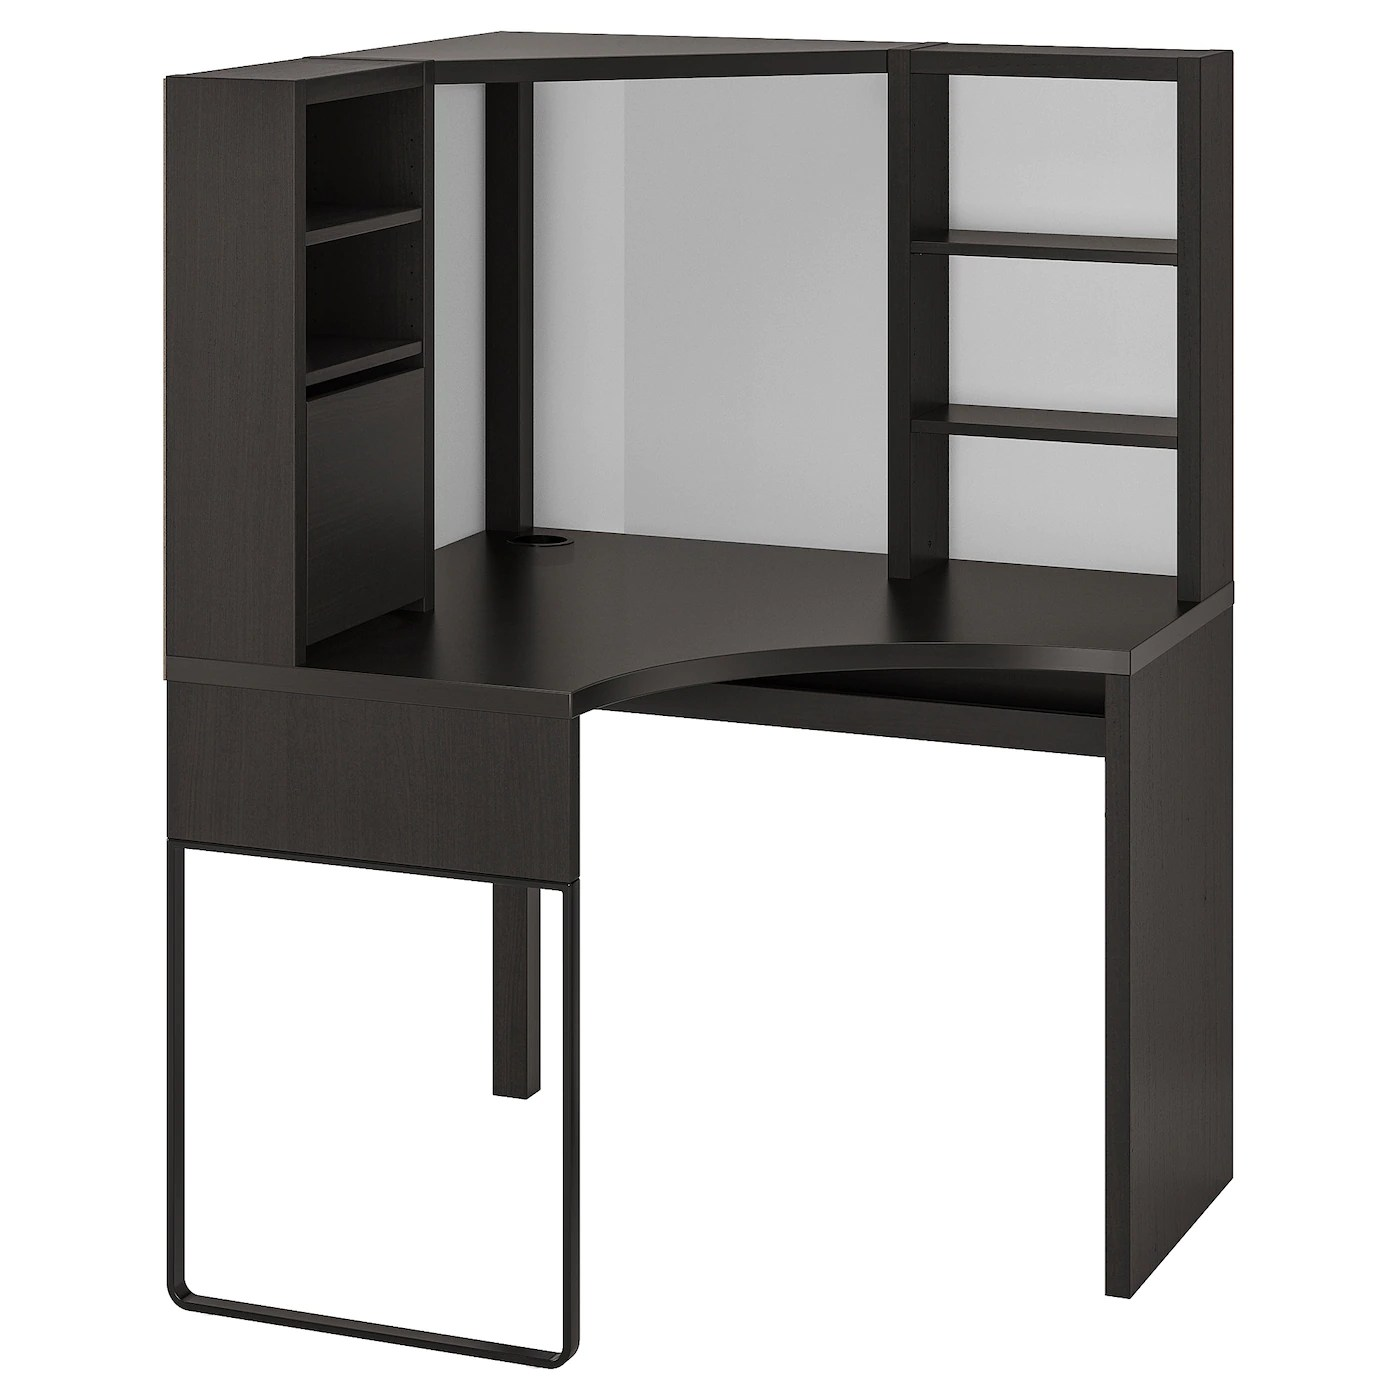 Micke Corner Workstation Black Brown 39 3 8x55 7 8 Ikea